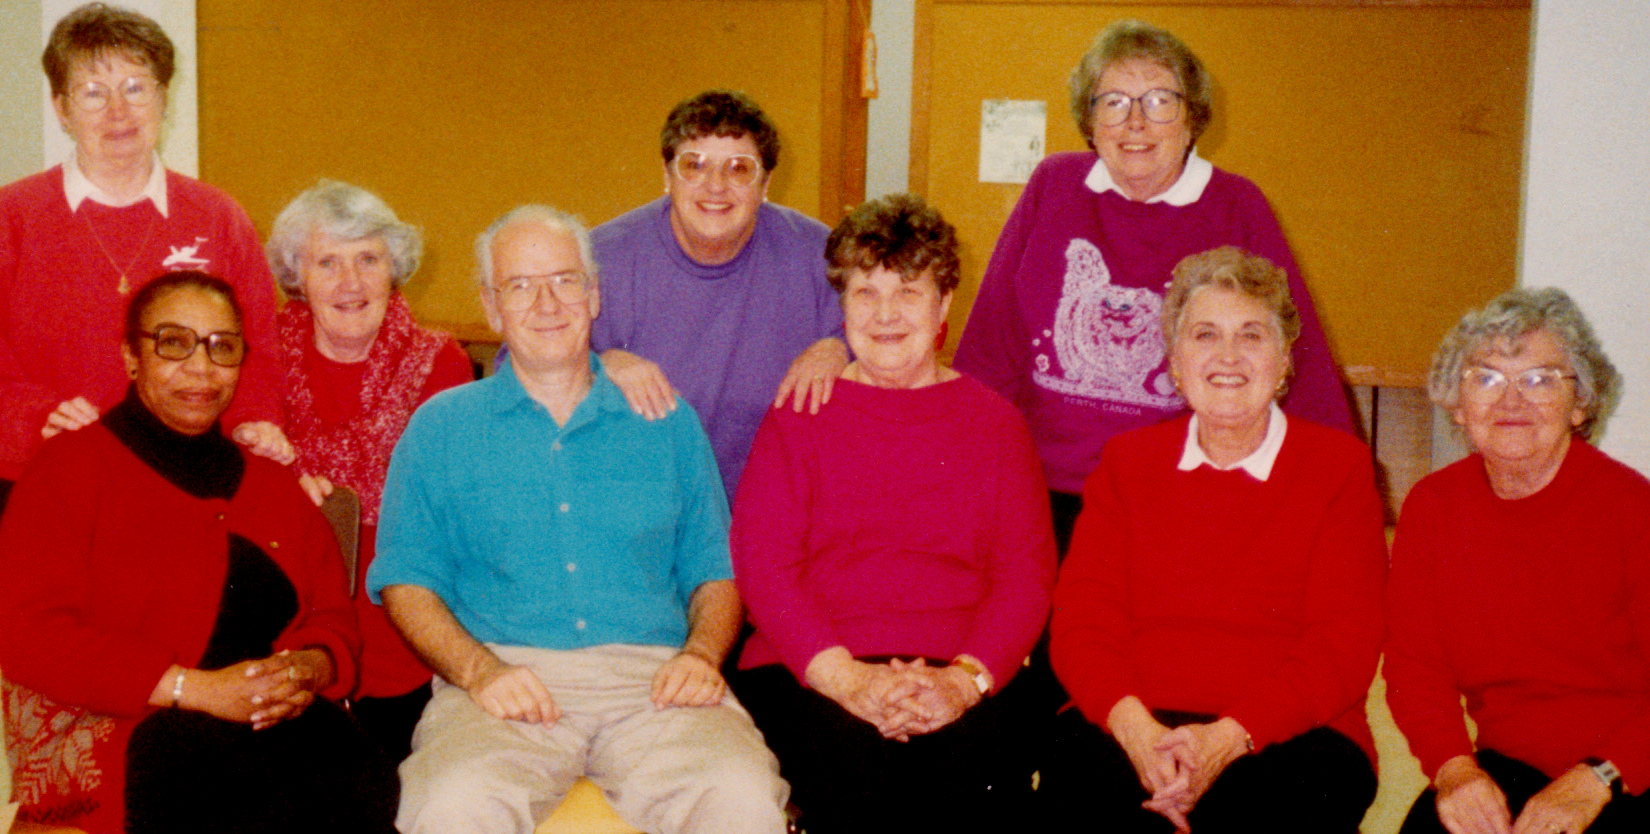 The Sage Age Theatre Troupe October 1992: L to R front row Nancy Coleman, Gord Gilhuly, Kaye Devlin, Barbara Hulme, Isabel Roy; back row: Jean Hopkins, Pat Matheson, Sheila Maltby, Mary Brown